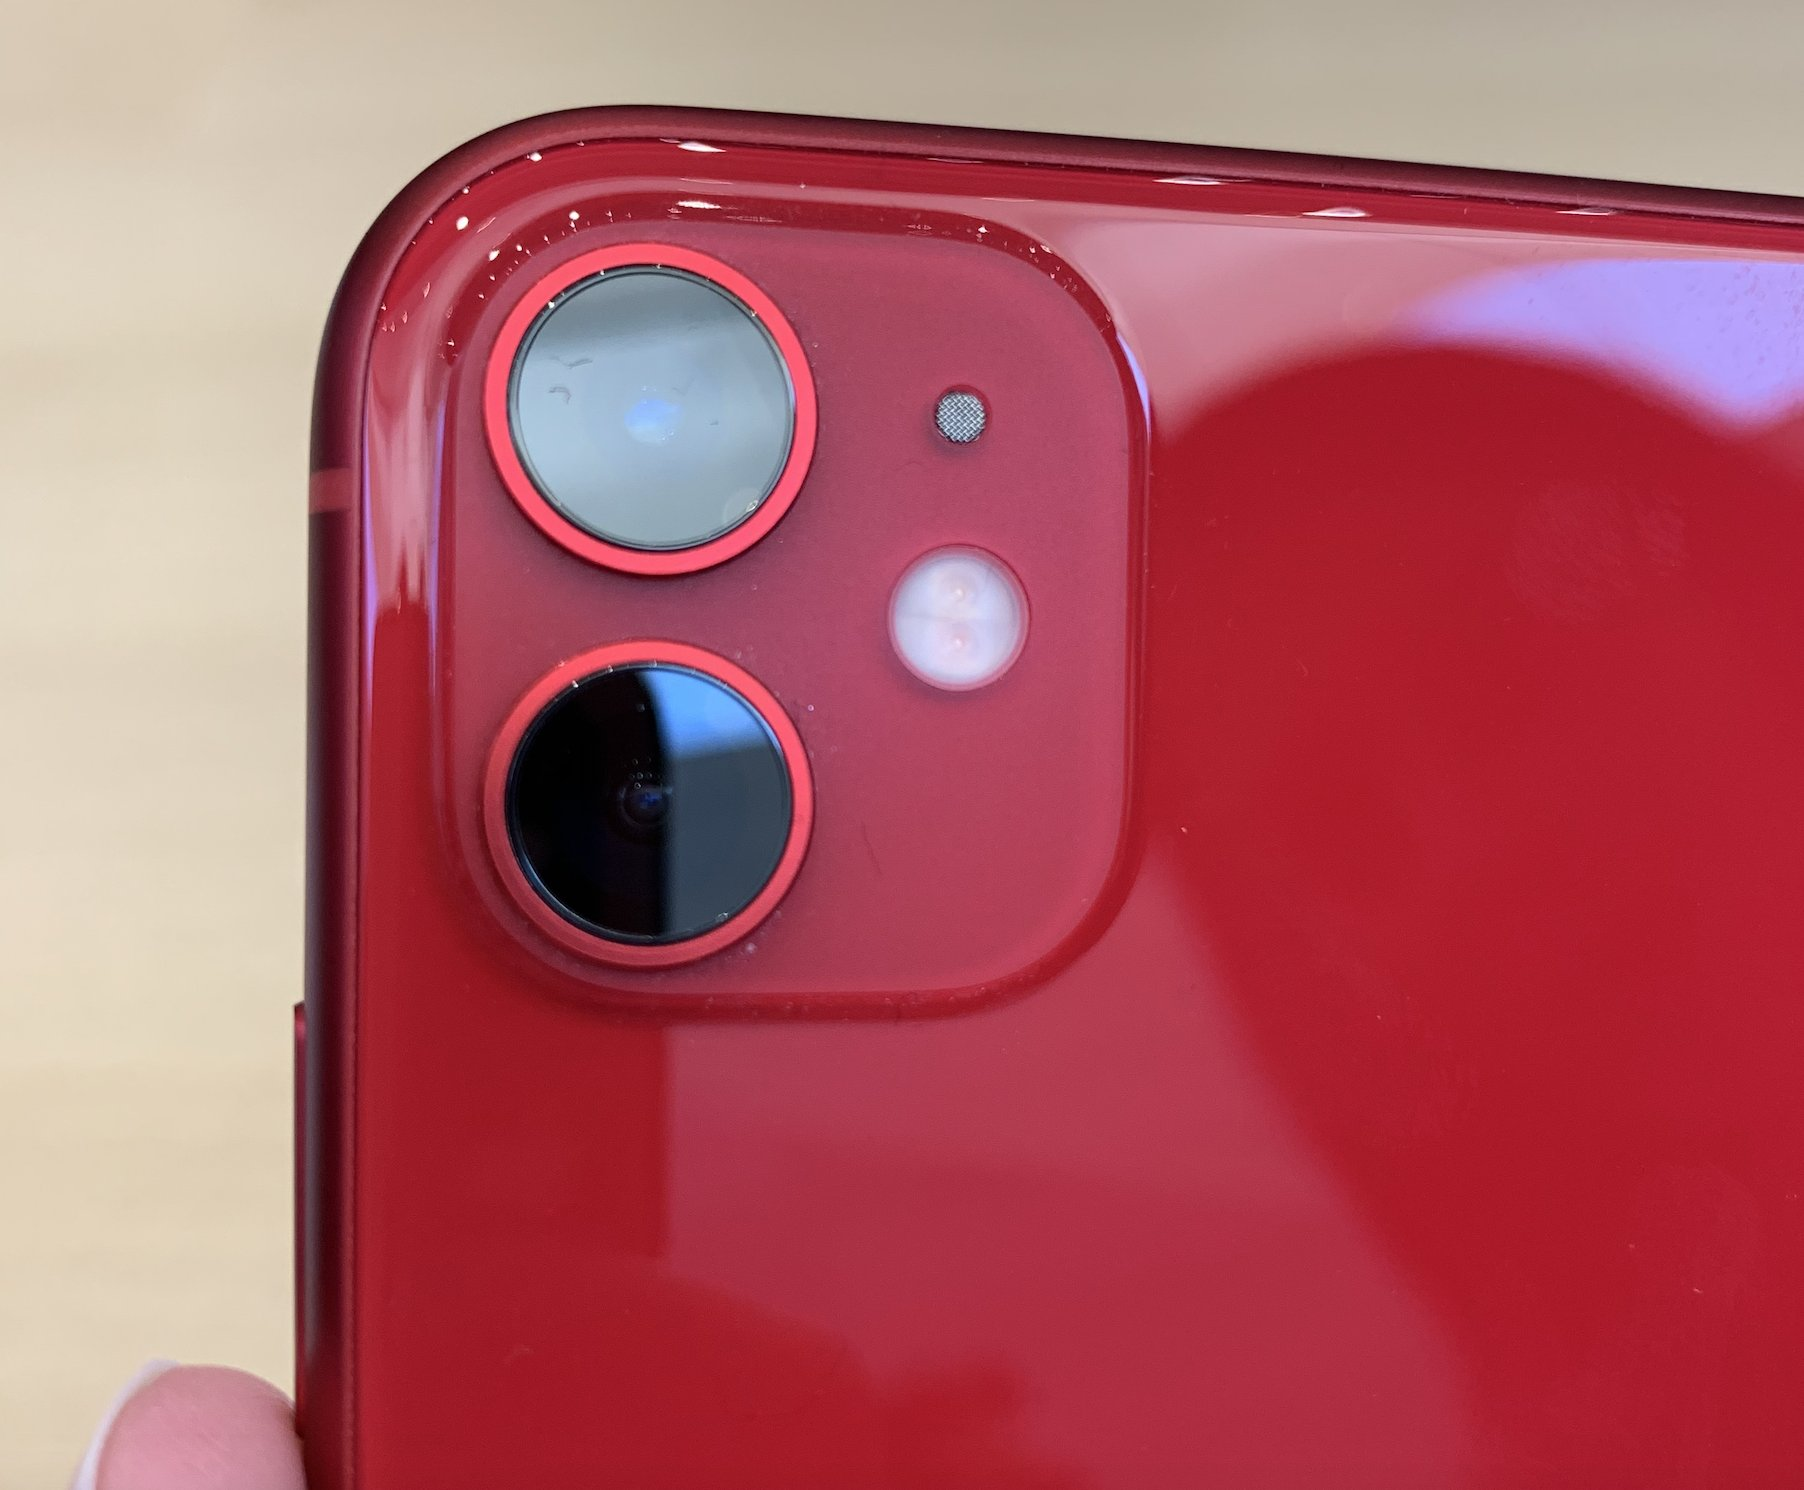 Here\u0027s what all the new colors for the iPhone 11 and iPhone